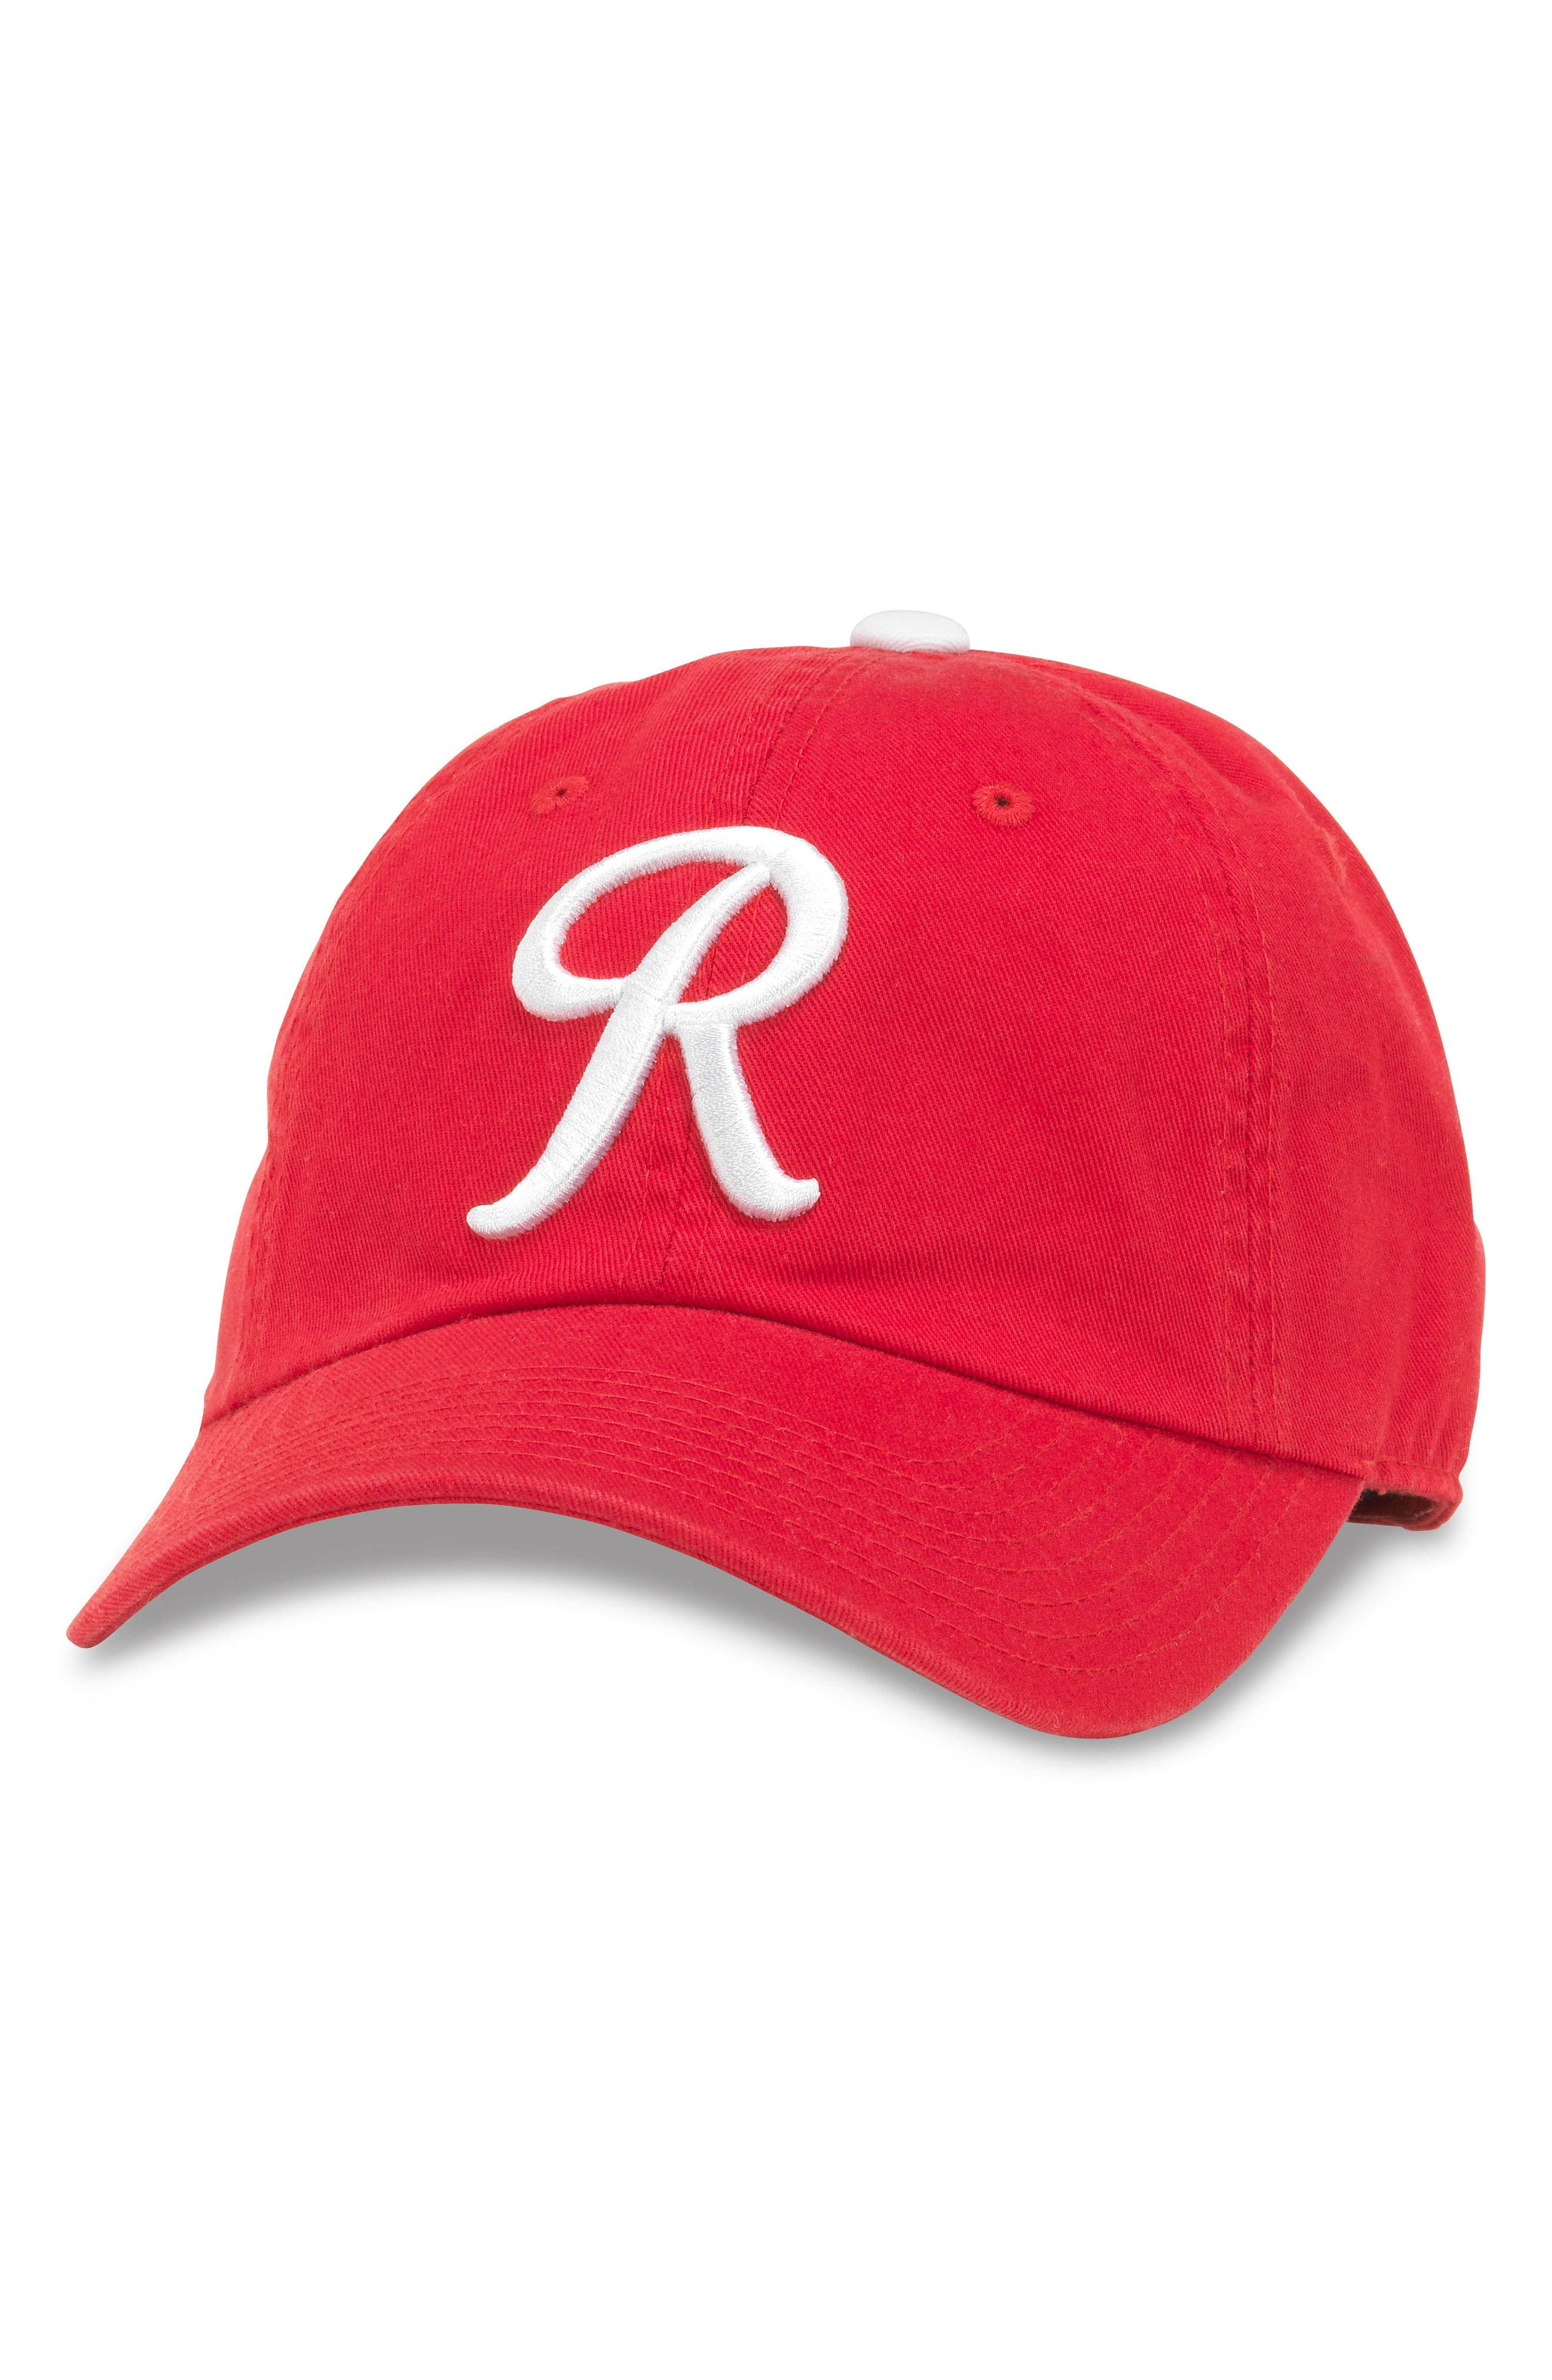 American Needle Ballpark MLB Baseball Cap